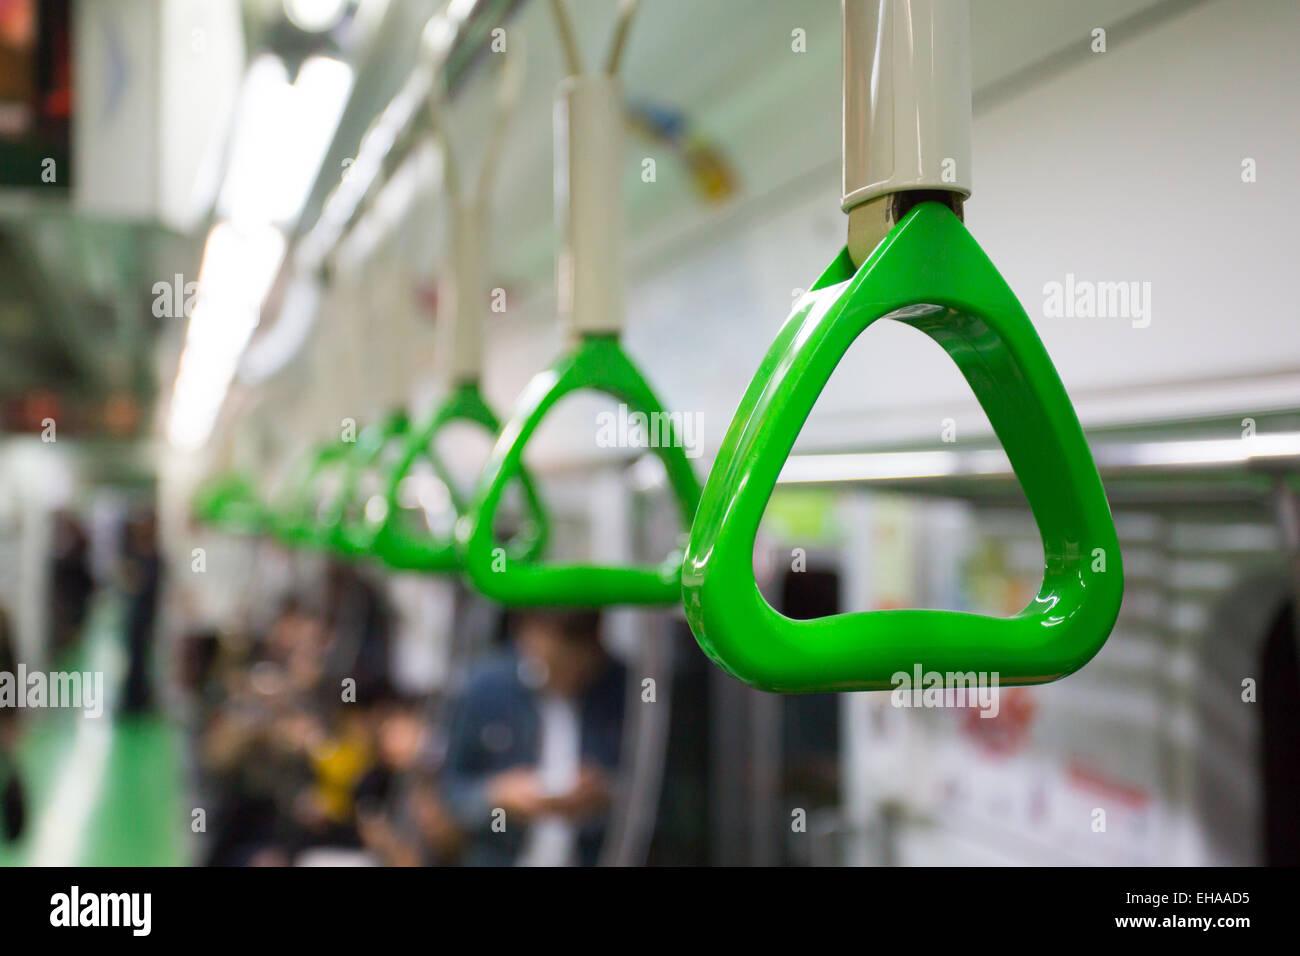 A handle for passengers in a Seoul subway train carriage - Stock Image